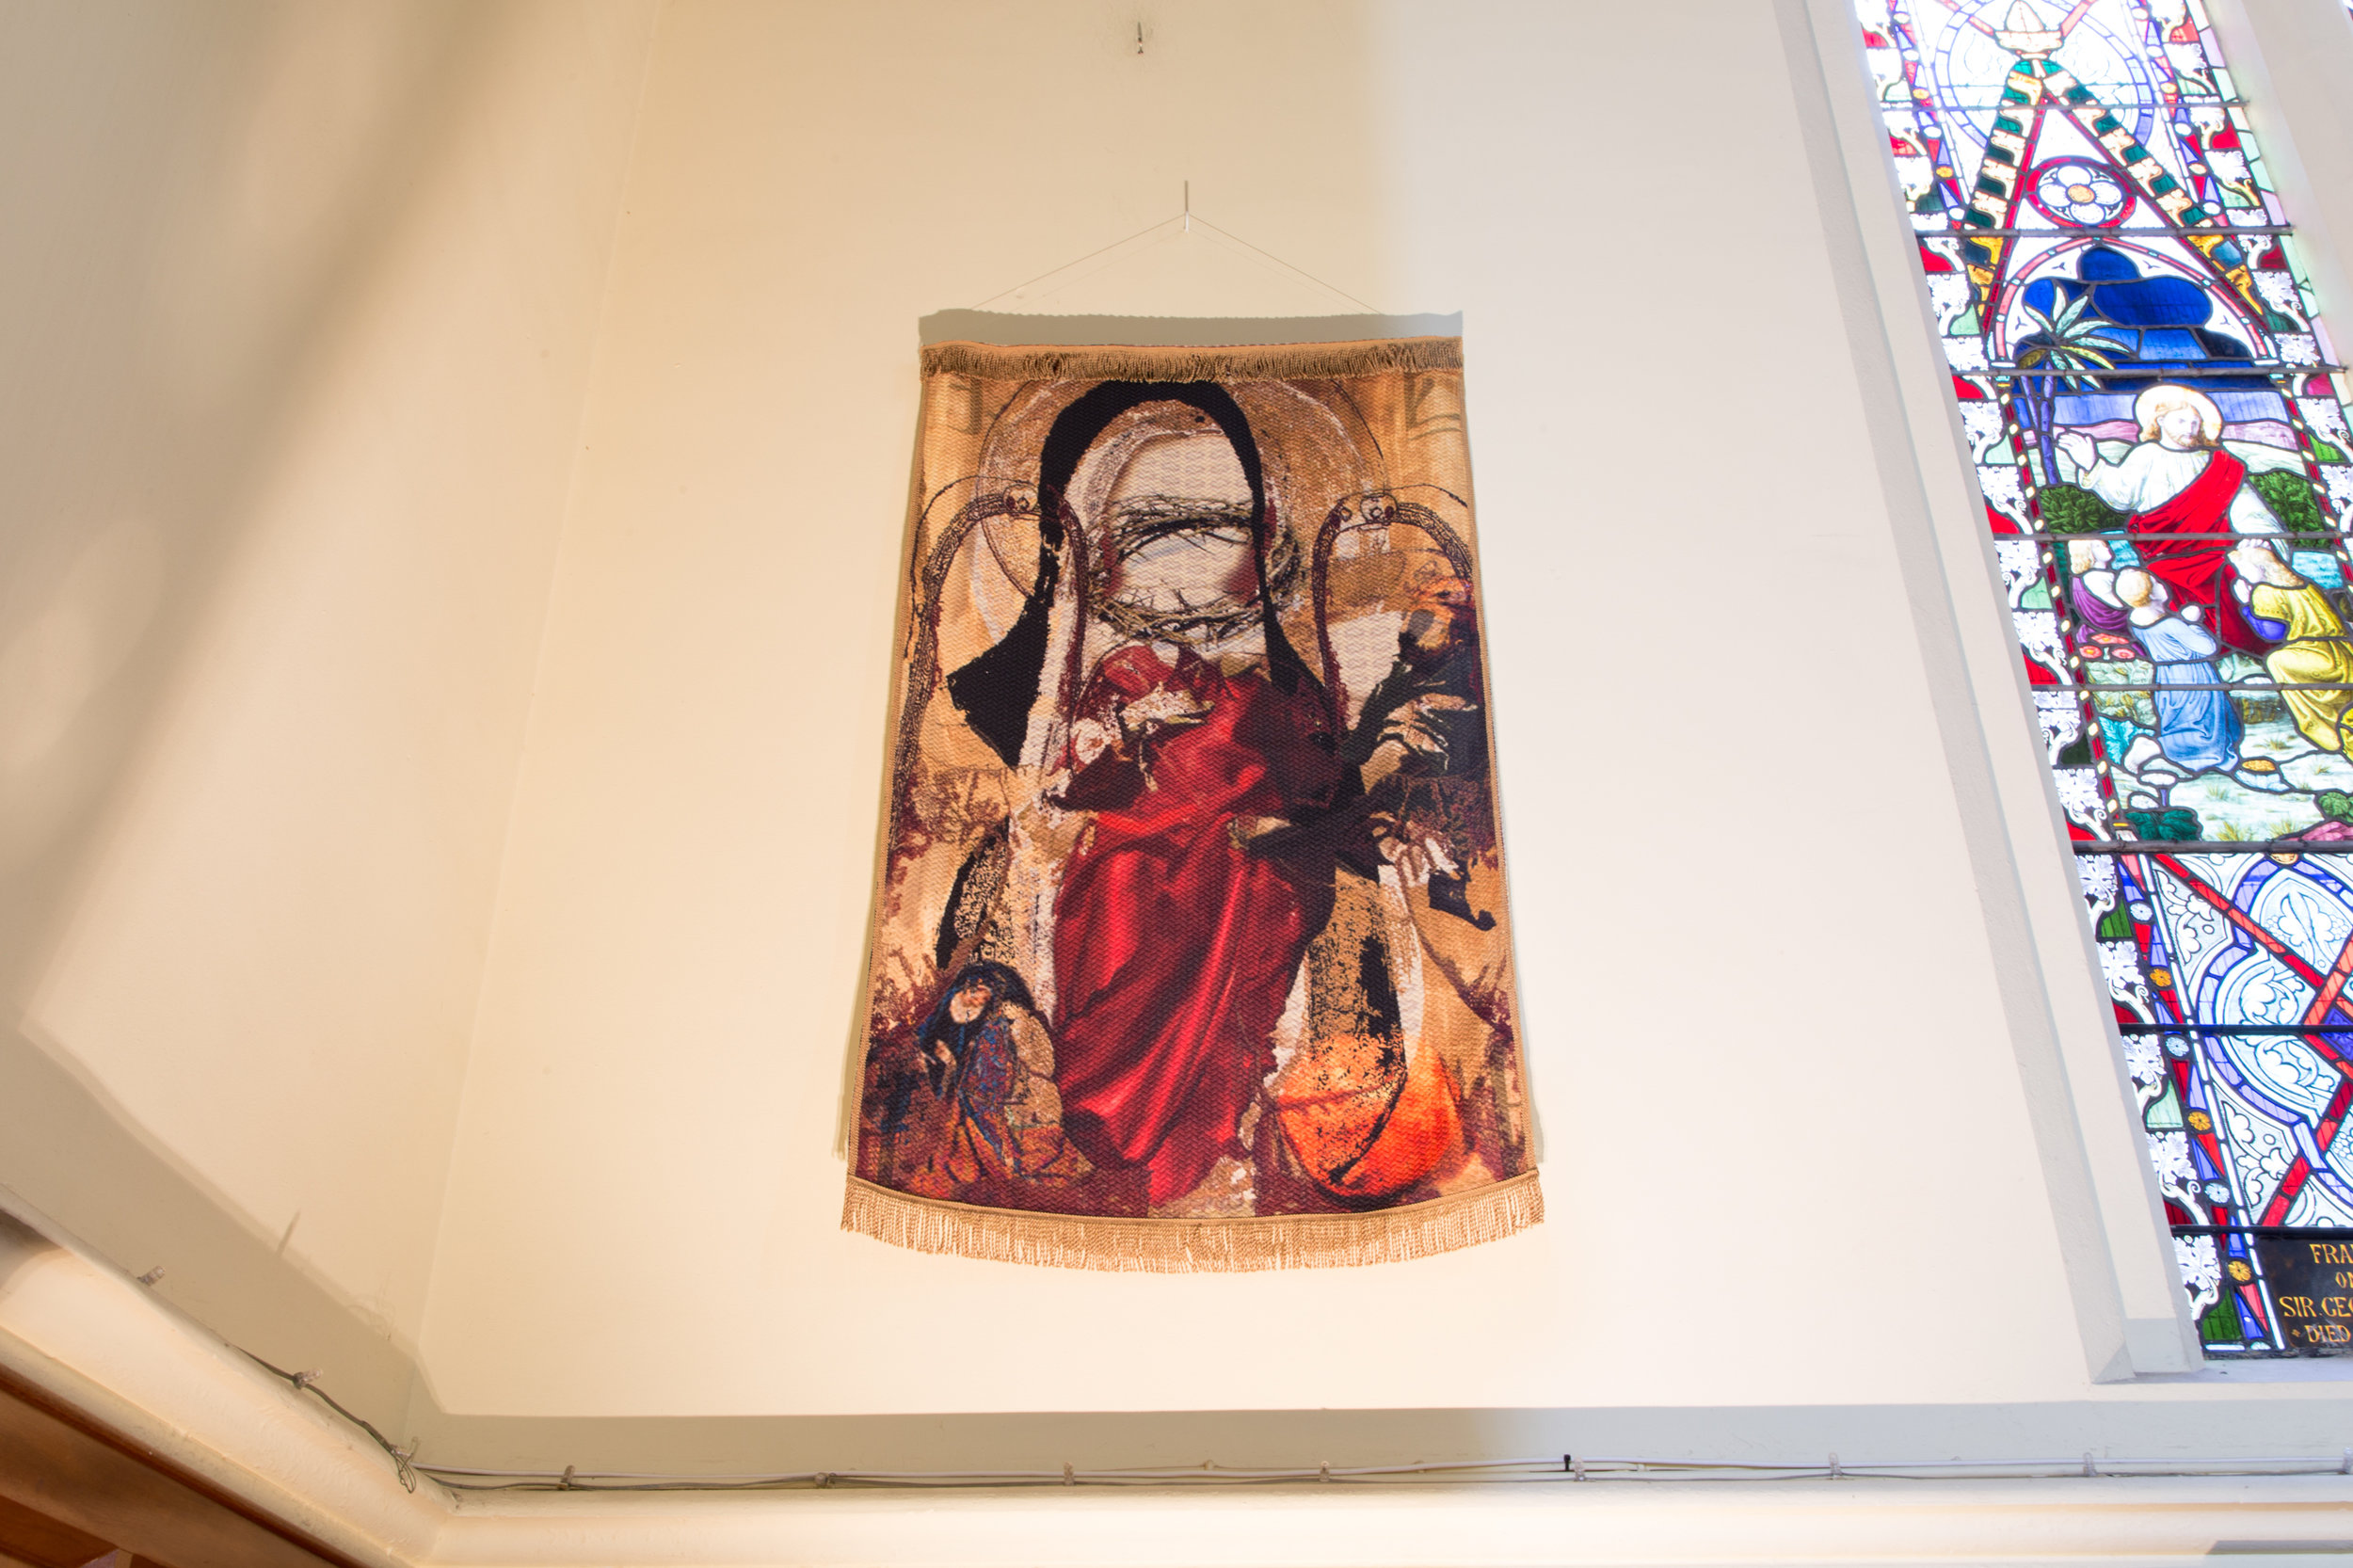 Station 10: Jesus is stripped  Aasiya Hassim Evans  Carpet One: Unveiled  2016, Digital printed on woven polyester 152.4 x 91.44 cm